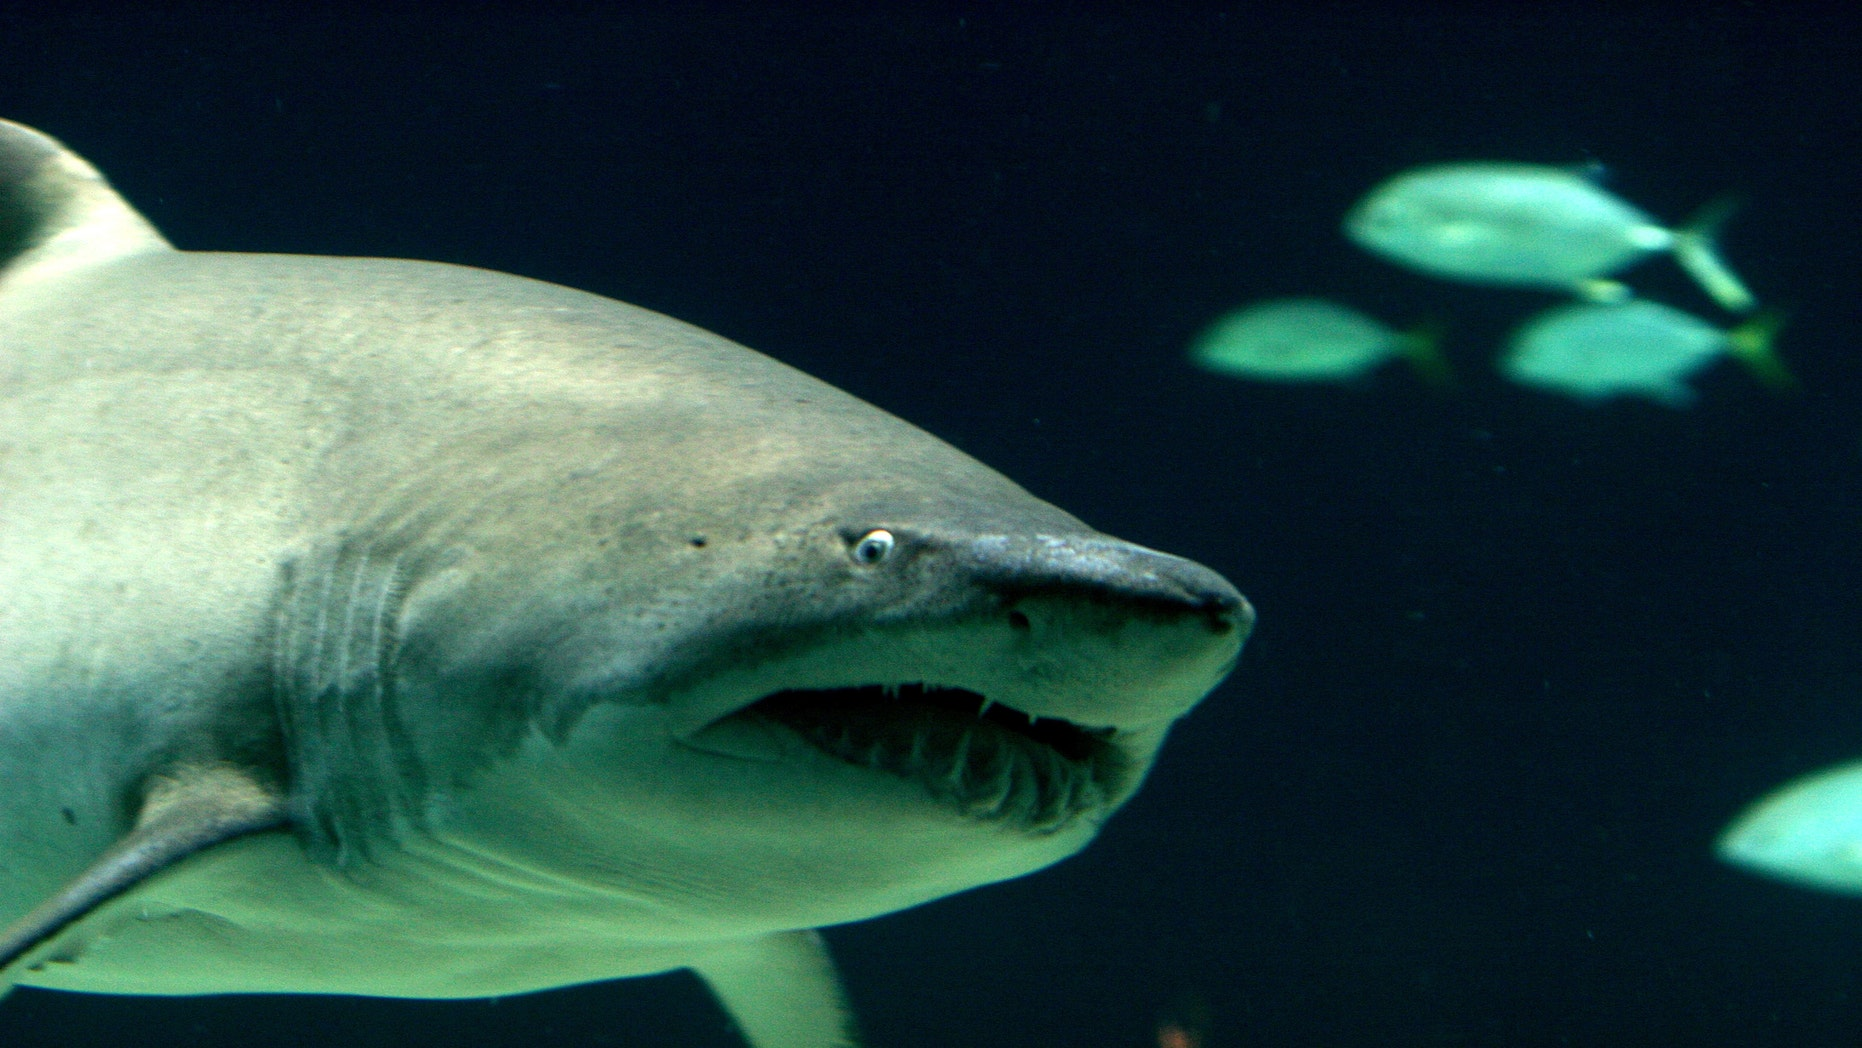 Joshua Seguine, of LaGrangeville, N.Y., was arrested Tuesday for allegedly keeping seven live sandbar sharks in an aboveground pool in his home. (A file image of a sandbar sharkis pictured)